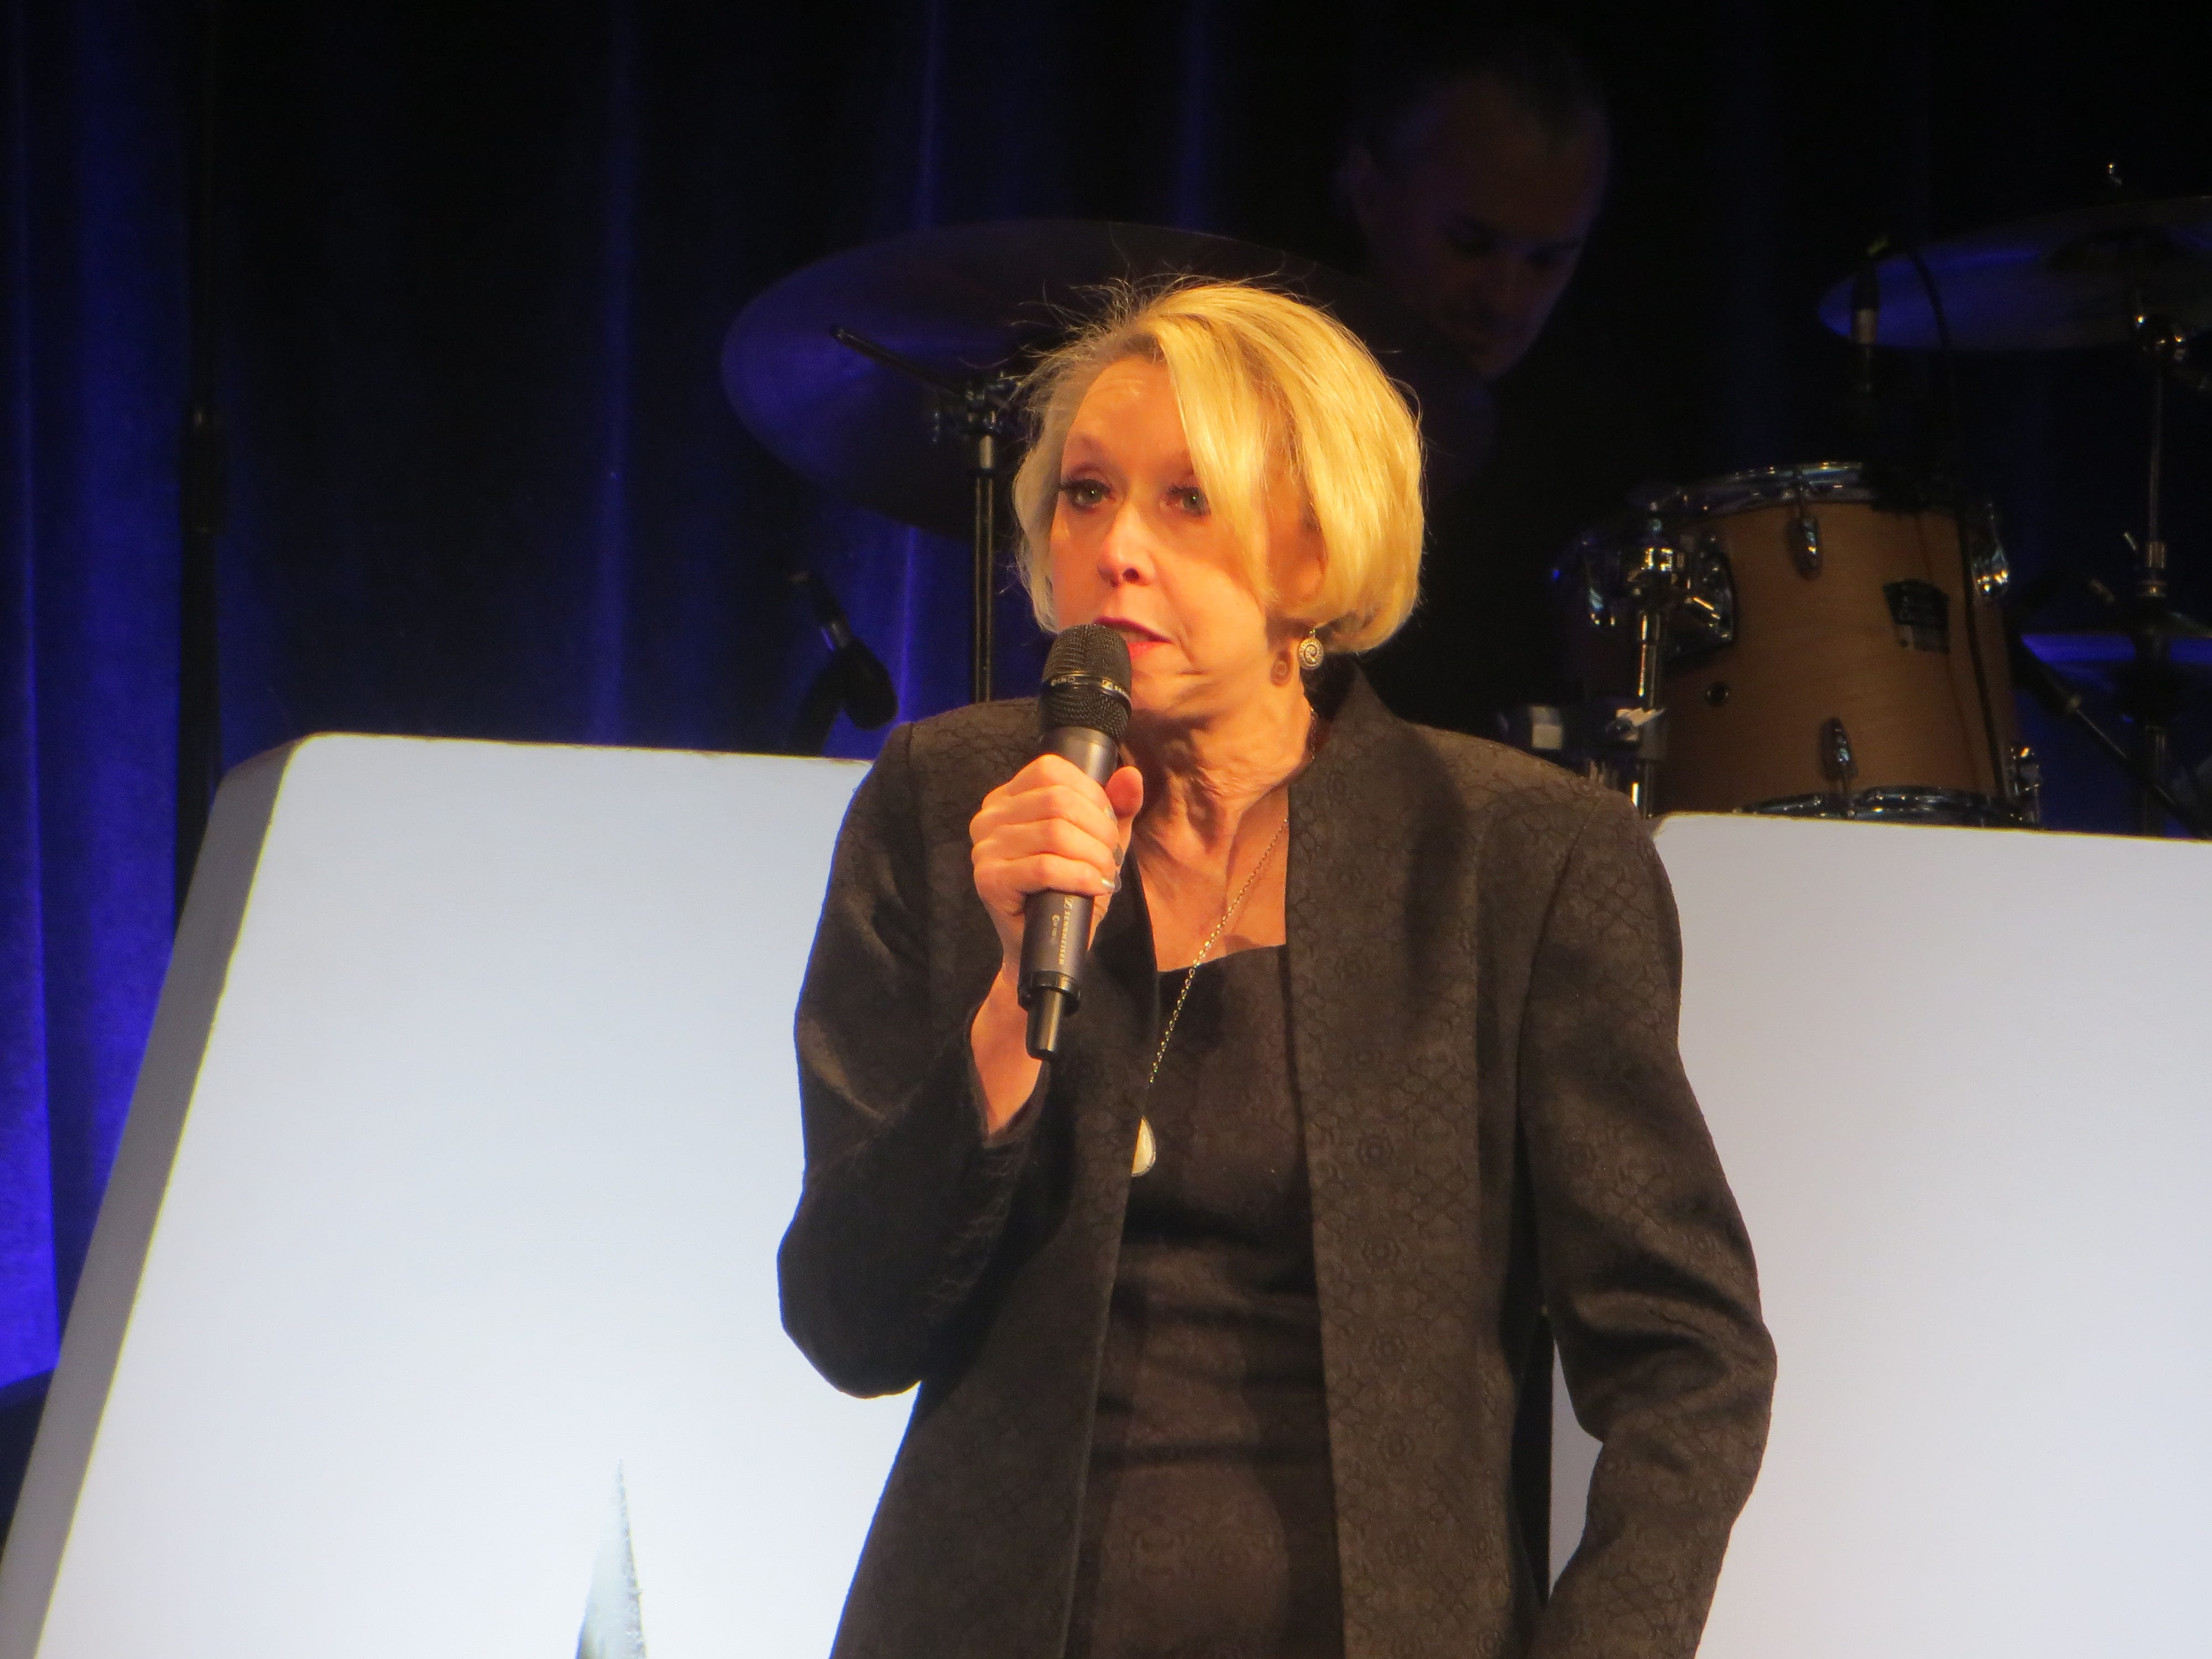 Julie Halston introduces First Look at BroadwayCon 2019, held Jan. 11 to 13, 2019, at the New York Hilton Midtown in Manhattan.